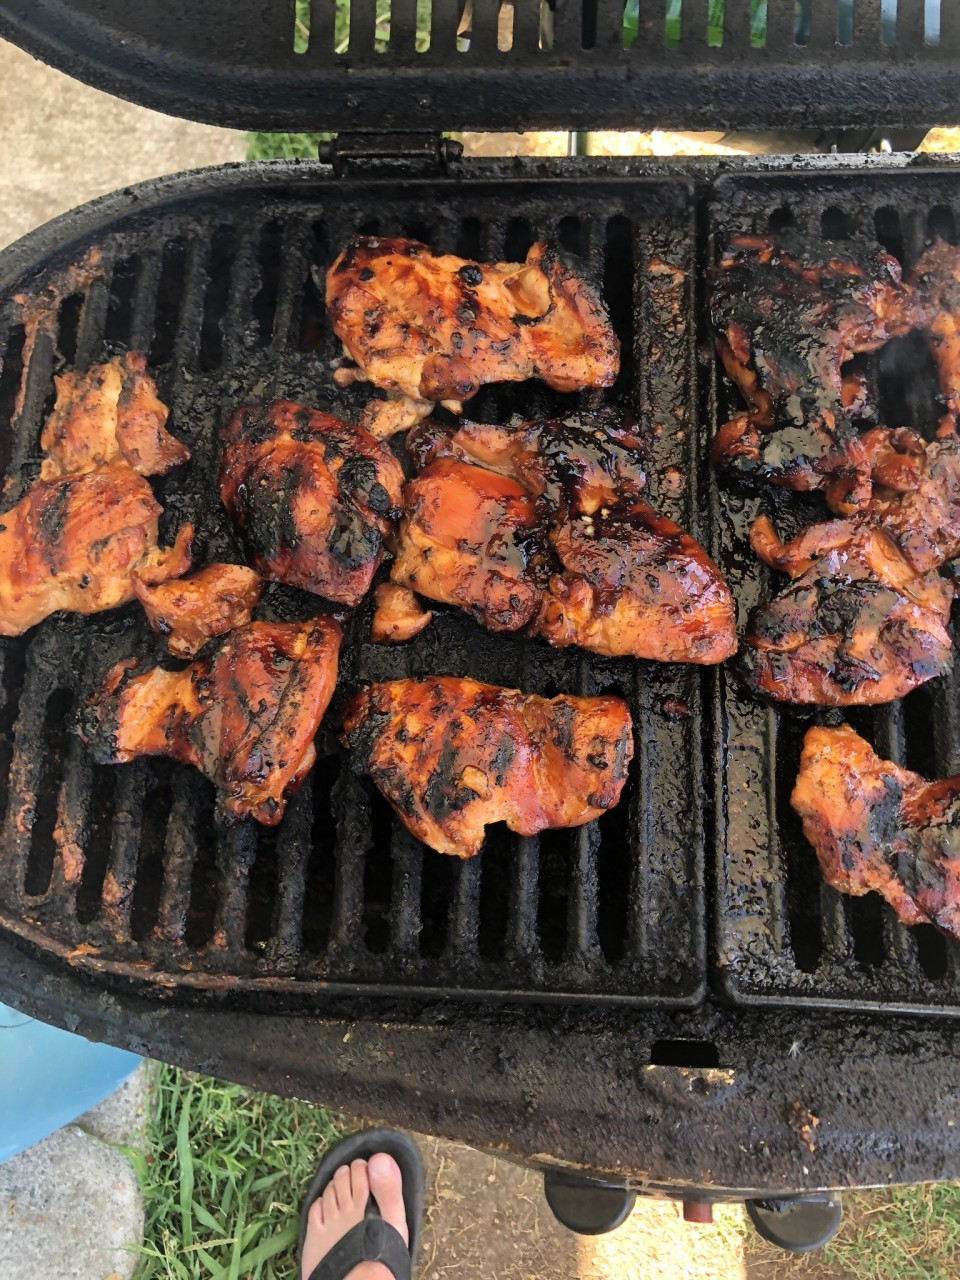 BBQ- fabulousness is enjoyed by Rainbow RV family and friends at the Napa California Wine Rally.  A Big Thank you to Mark and Dave of Sebastopol Ca.  for putting on a fabulous Wine Rally event on behalf of the Rainbow RV family of Campers and Rver's :)